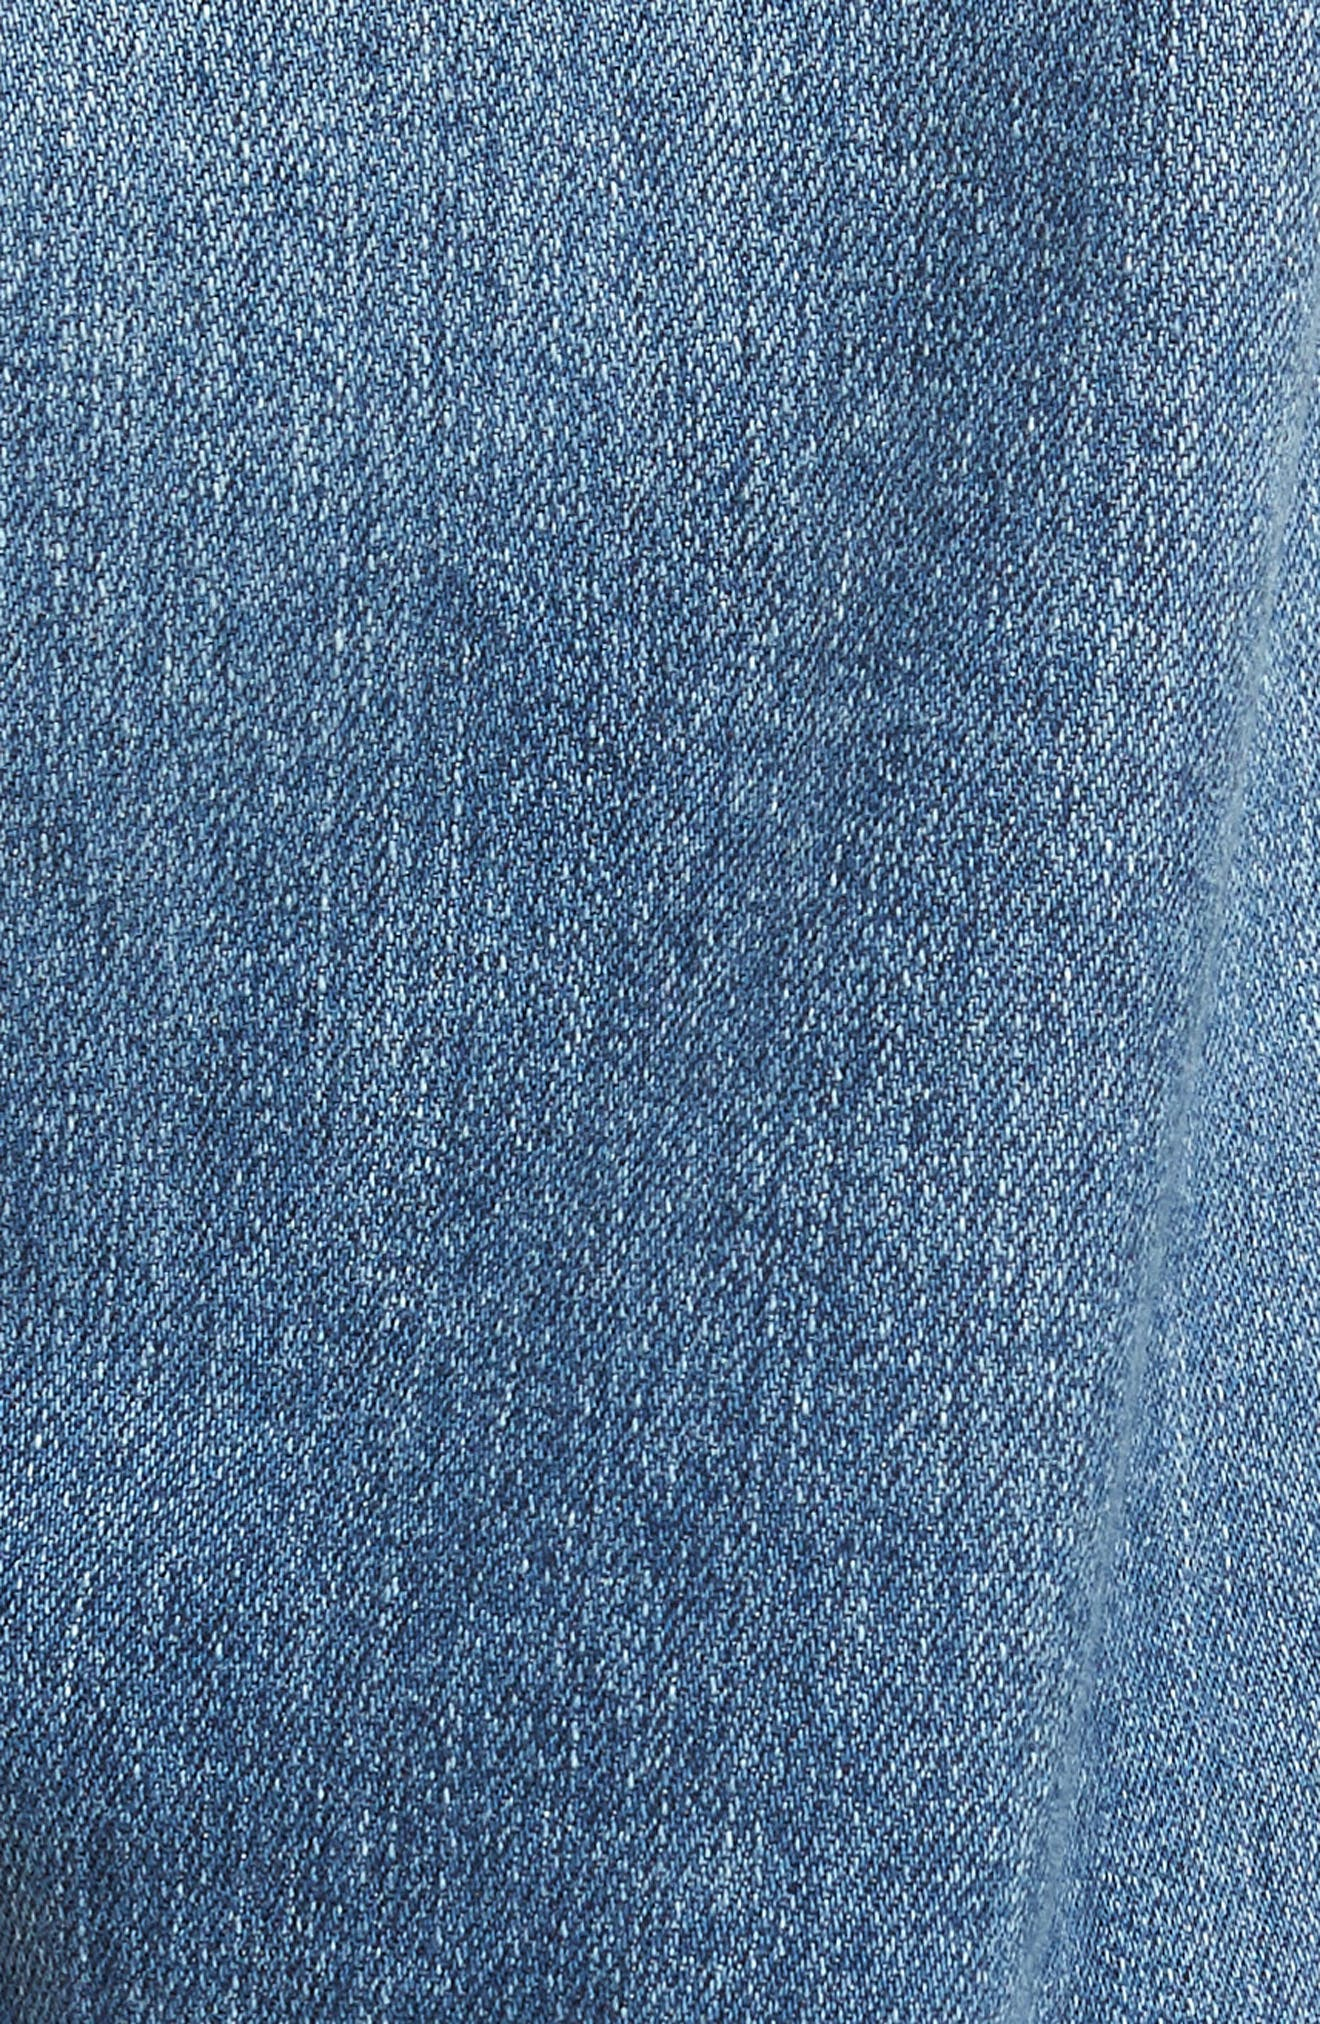 Ives Straight Leg Jeans,                             Alternate thumbnail 5, color,                             15 Years Aground